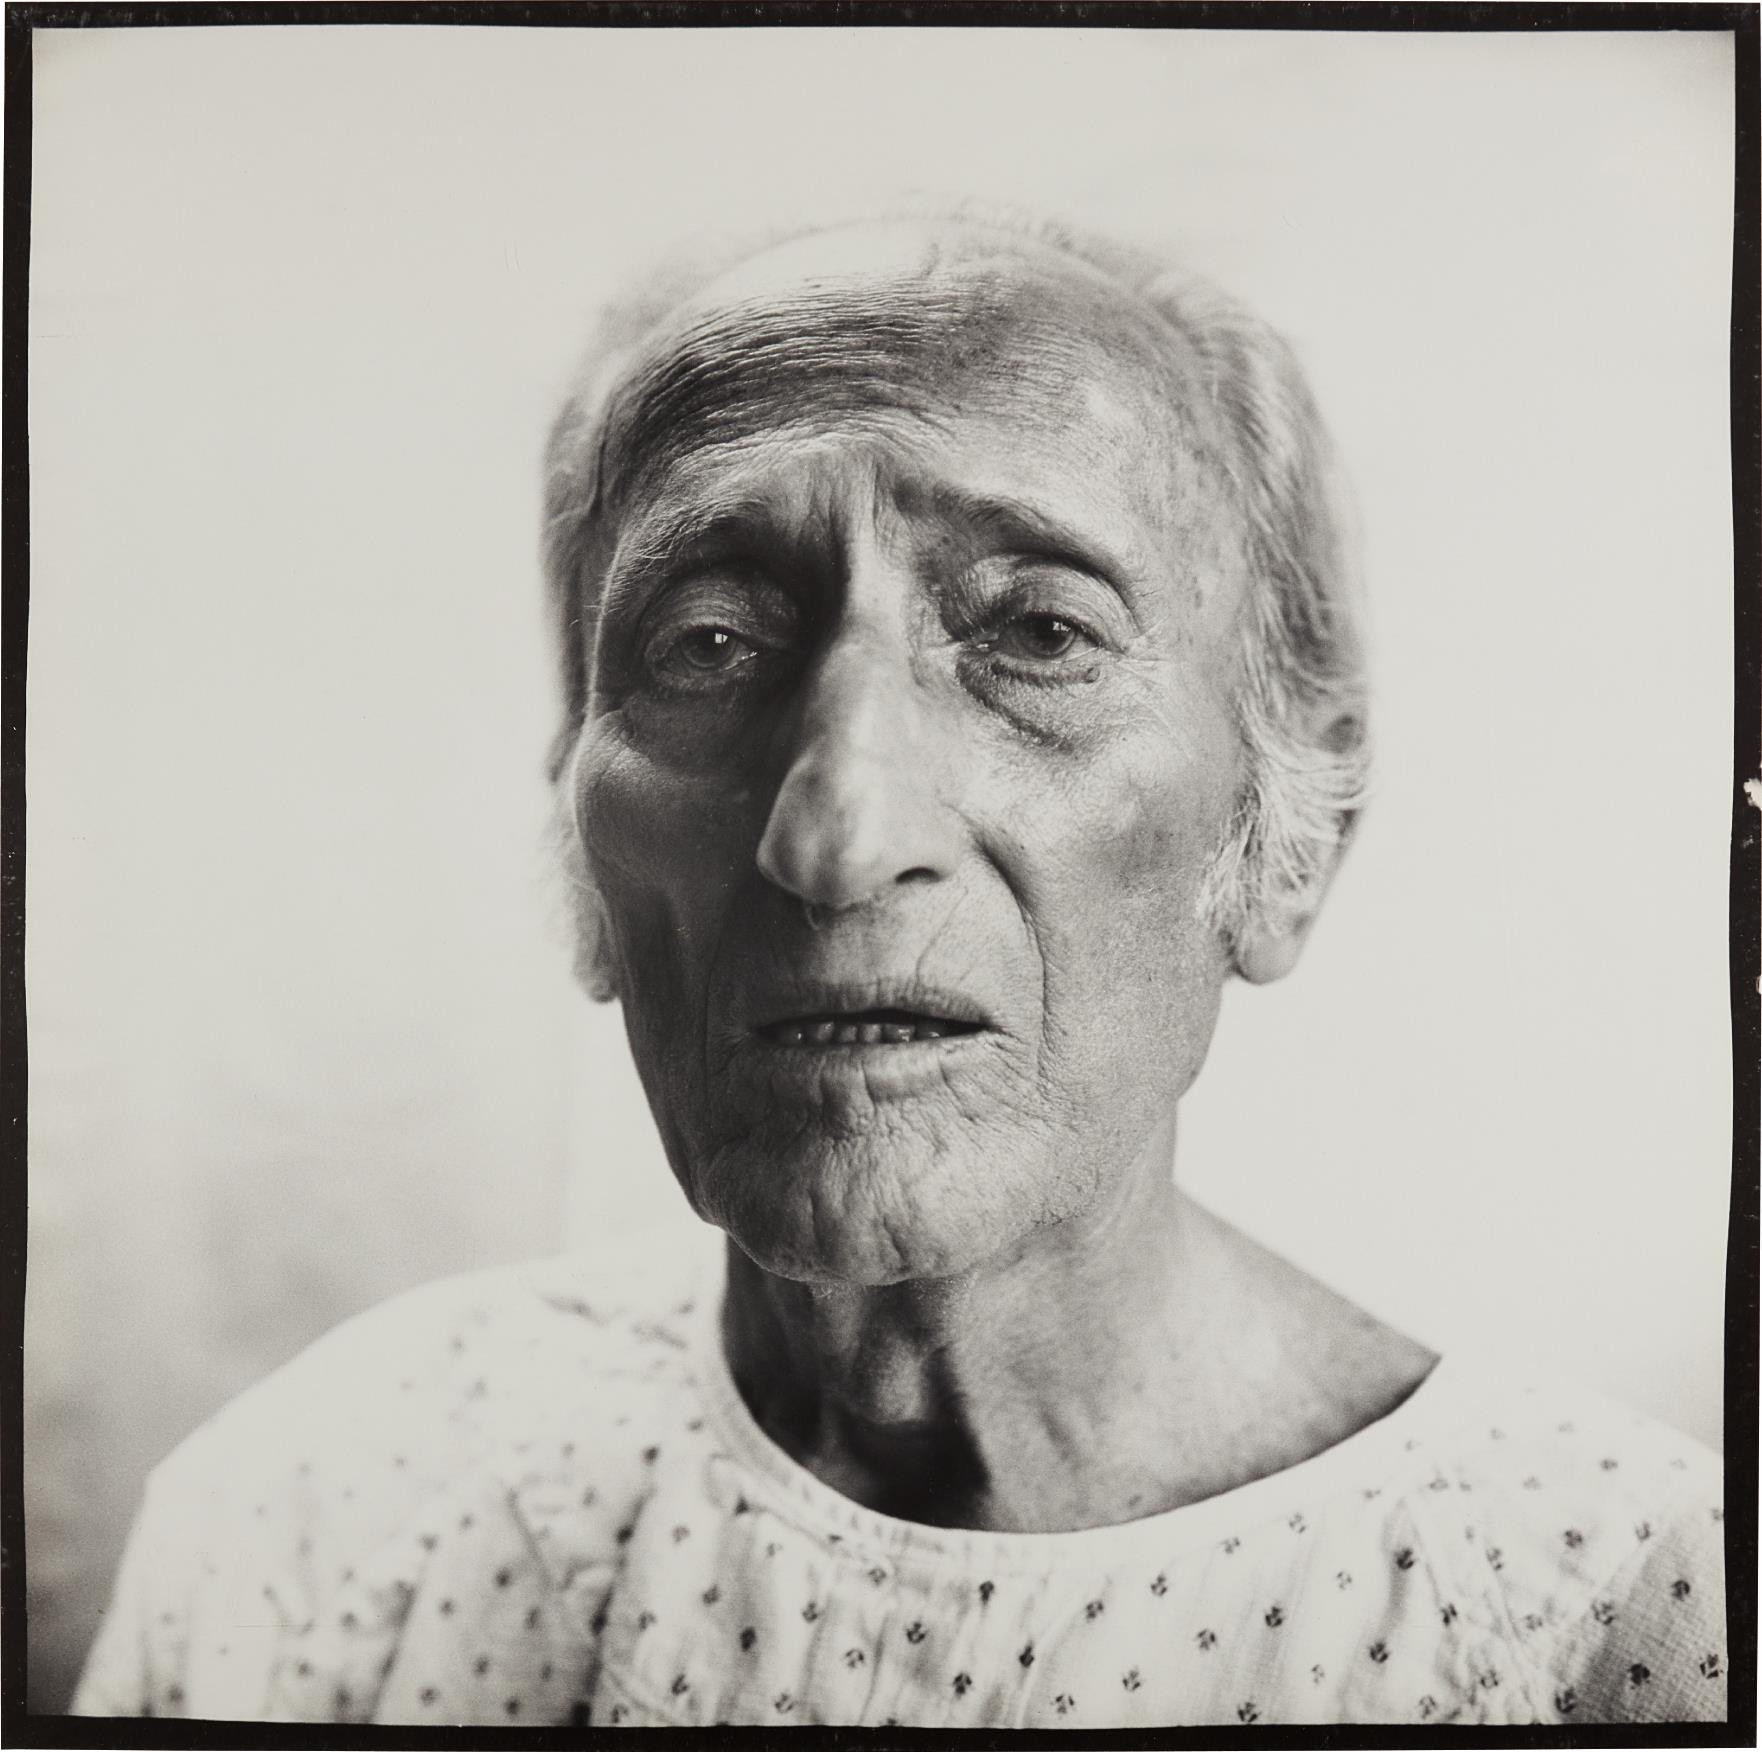 Richard Avedon-Jacob Israel Avedon, Father of Photographer, Sarasota 12.19.72-1972